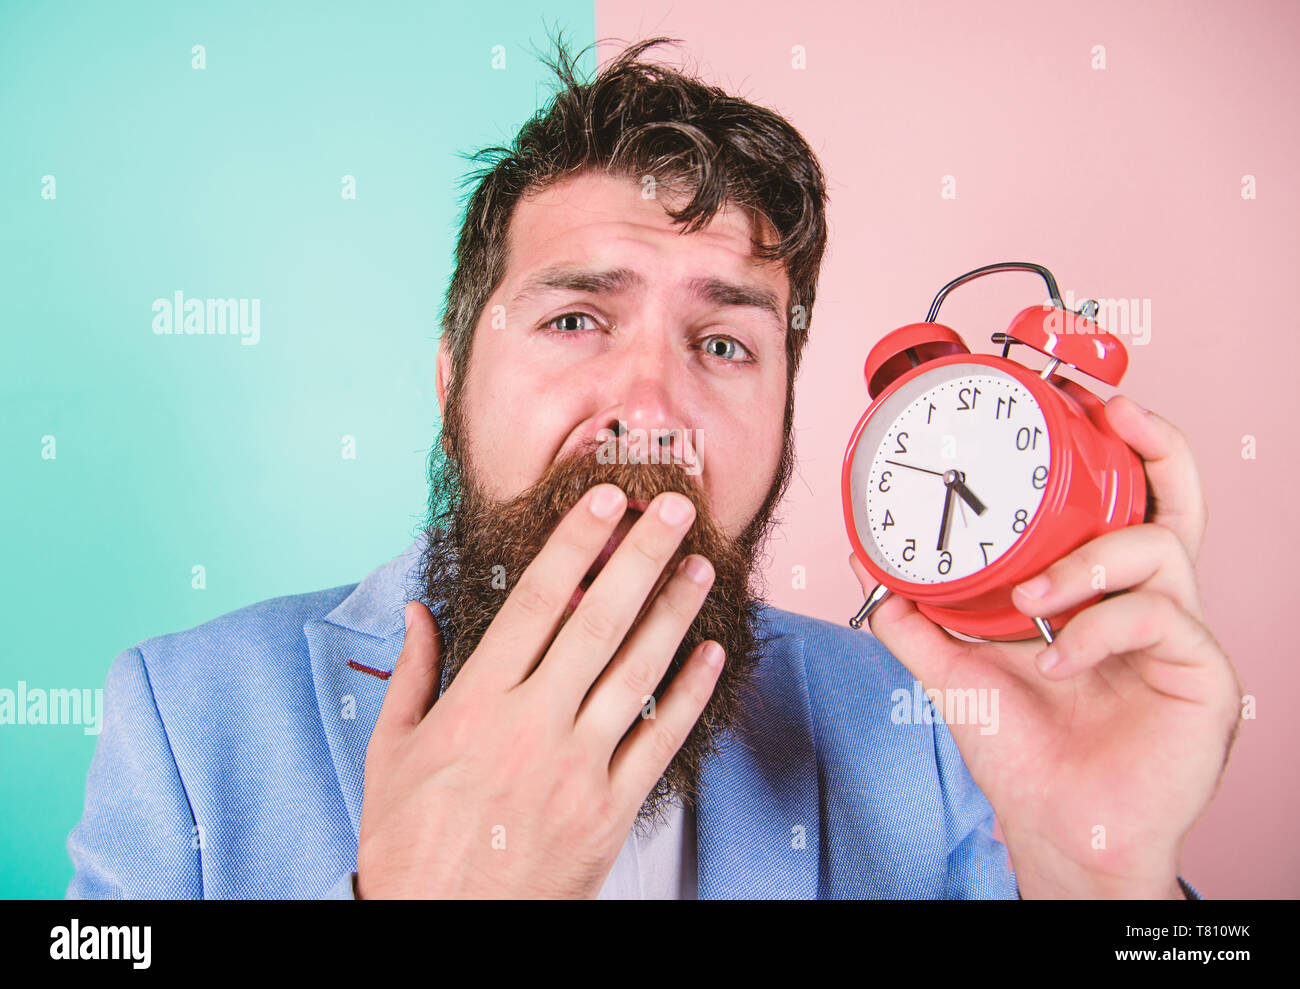 Time management skills. How much time till deadline. Time to work. Man bearded sleepy tired businessman hold clock. Stress concept. Hipster stressful working schedule. Businessman has lack of time. - Stock Image